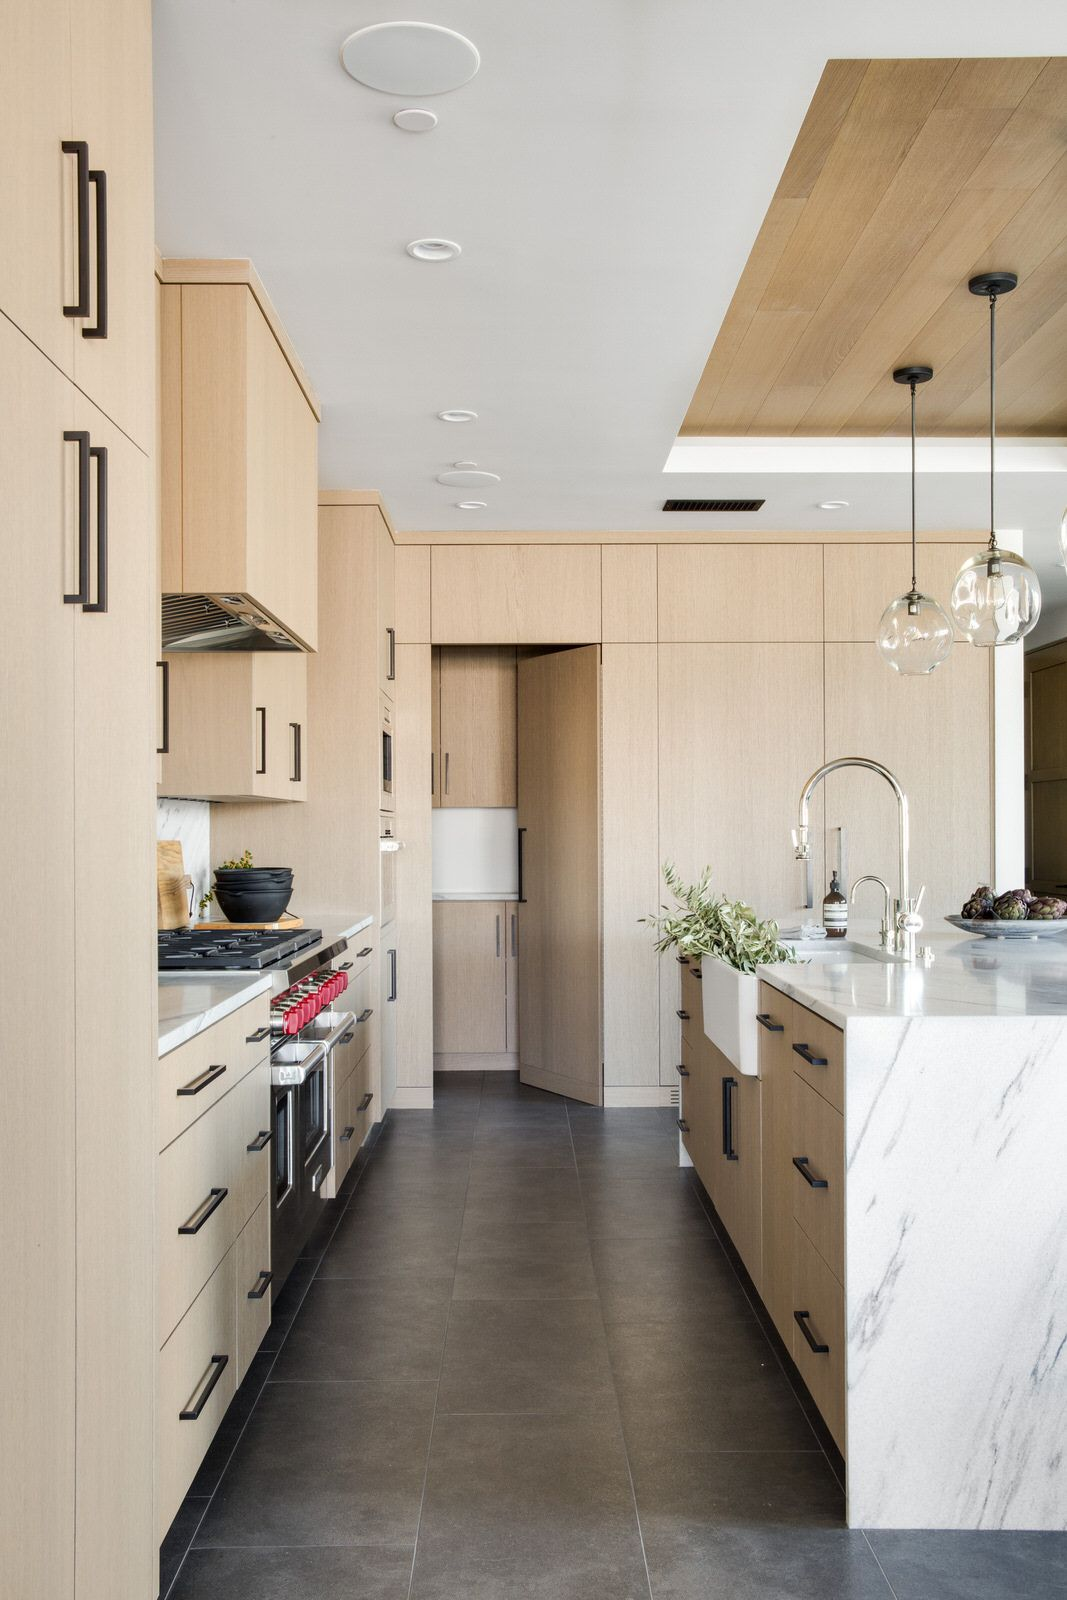 White Oak Kitchen Cabinets With Waterfall Marble Island Design By Chad Mellon White Oak Kitchen Oak Kitchen Cabinets Brown Kitchen Cabinets